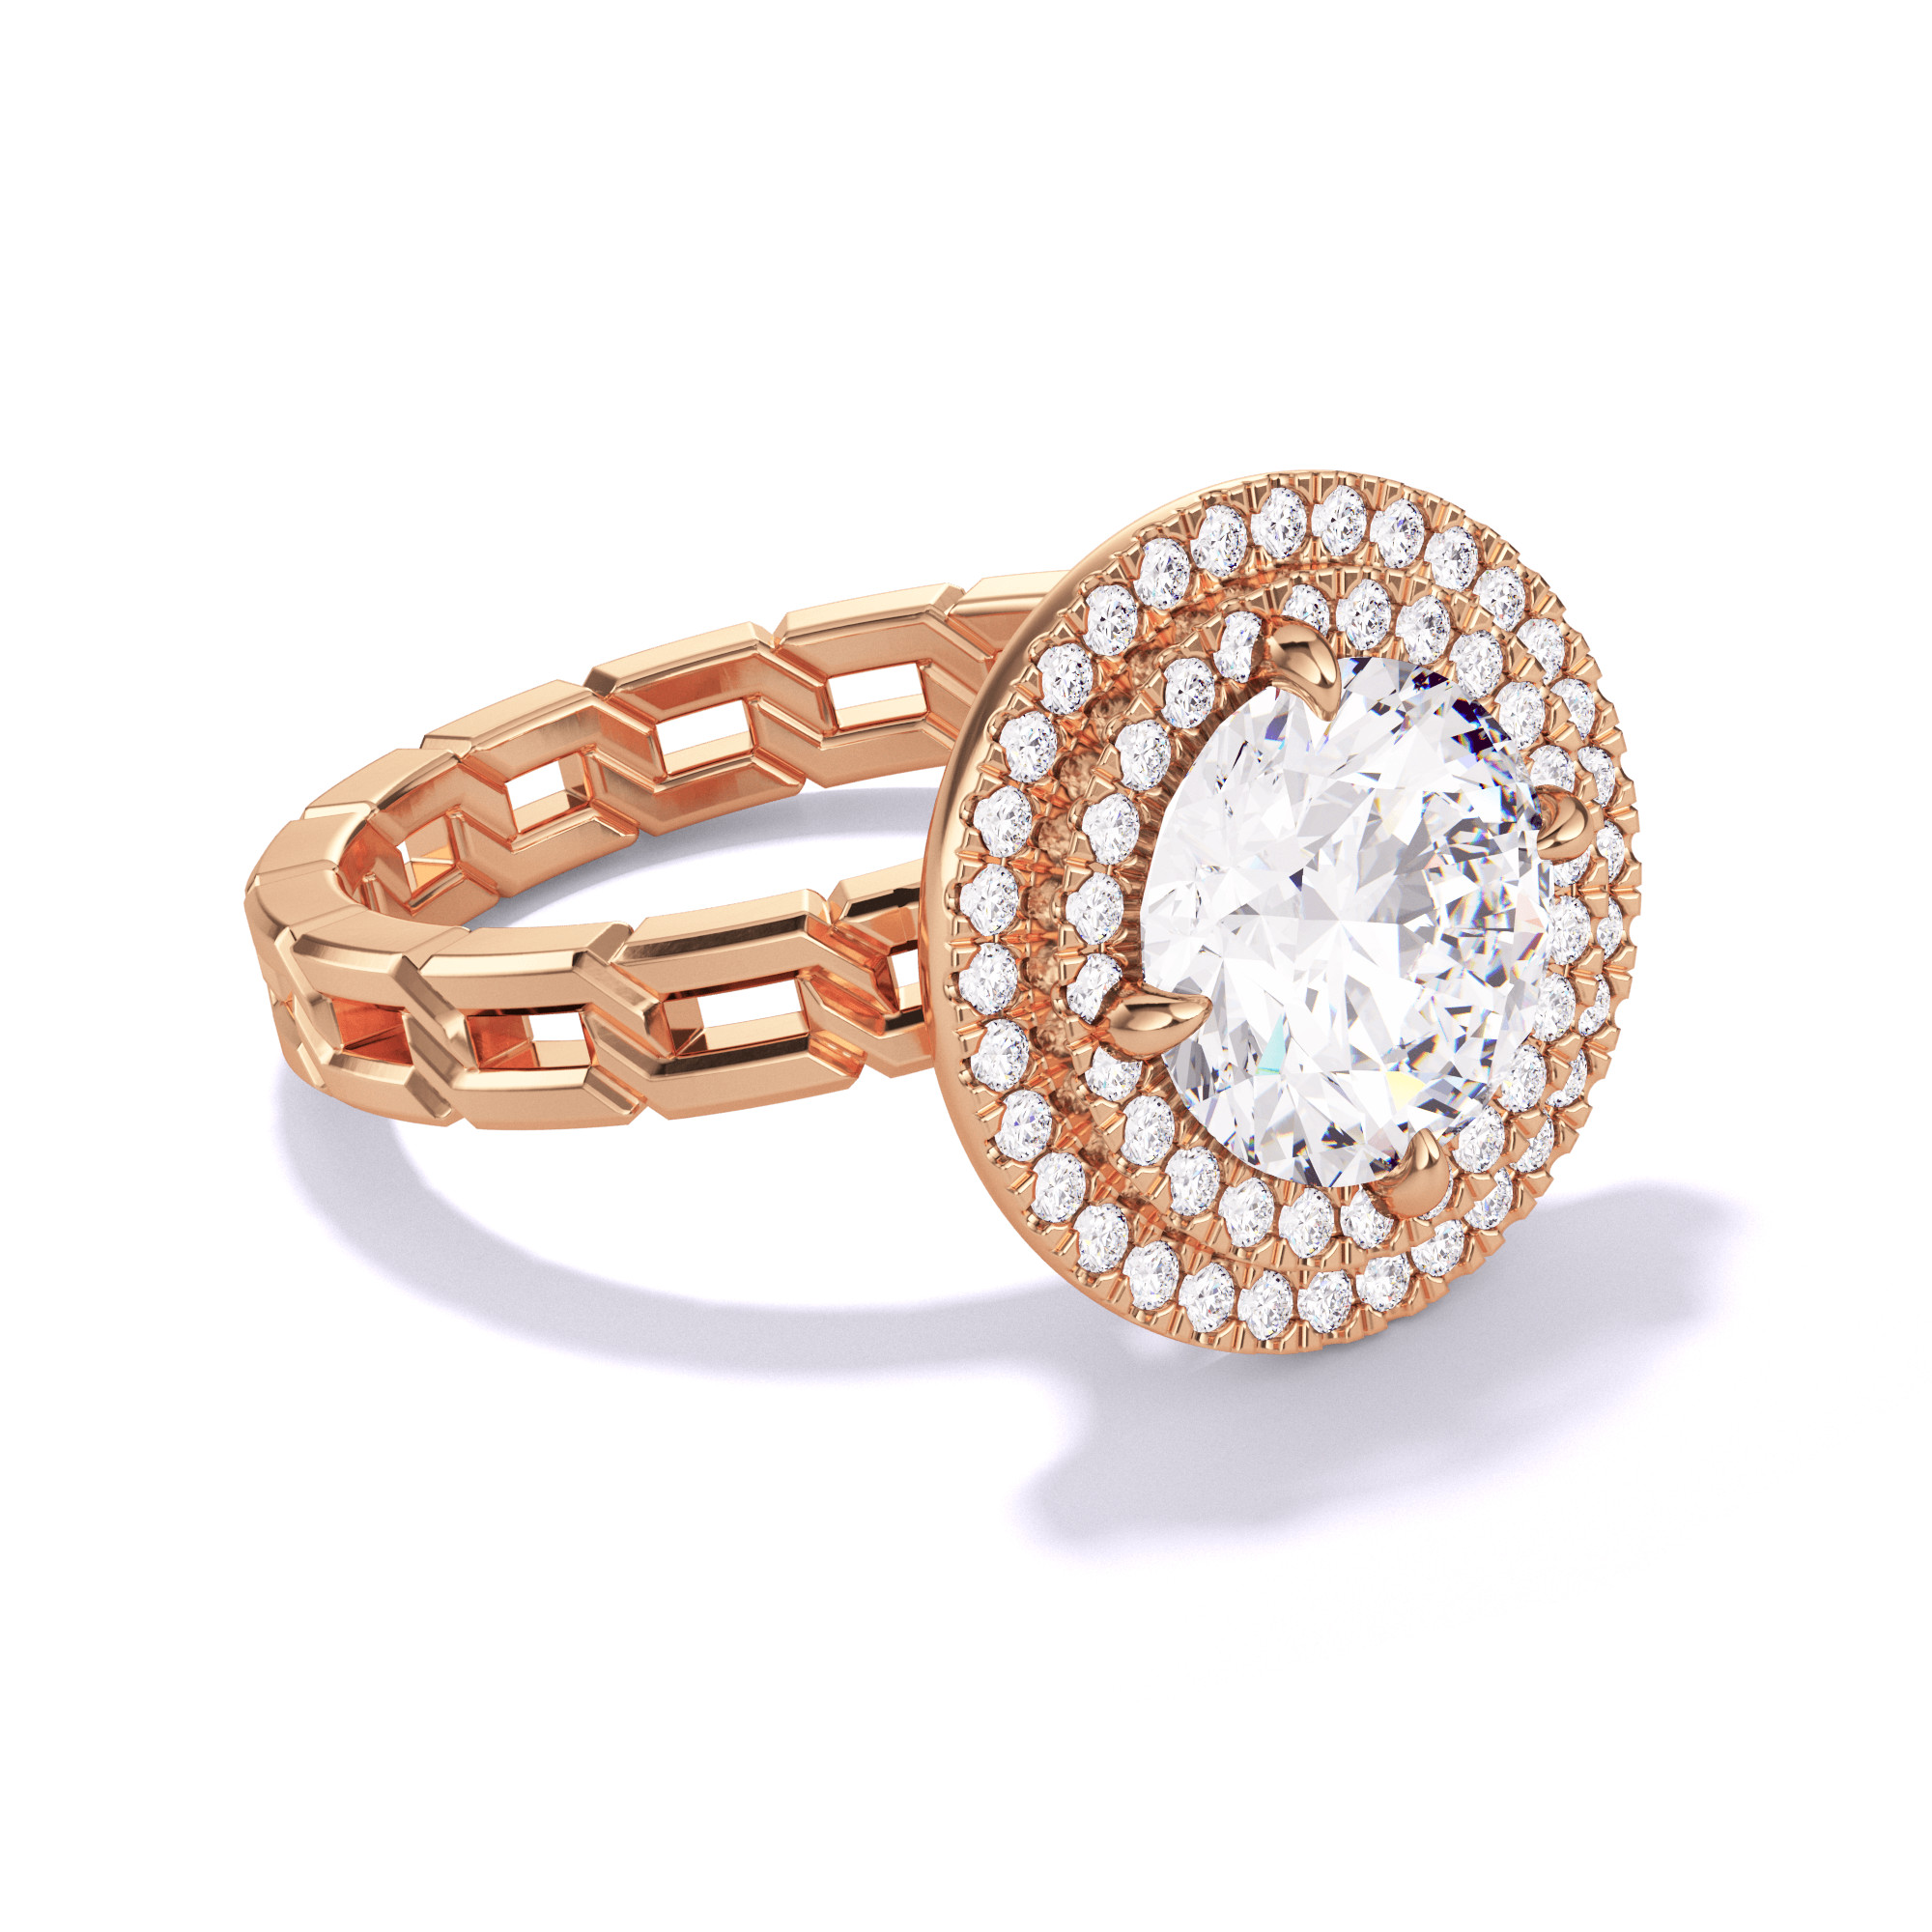 ROUND CUT, DOUBLE HALO SETTING, 16 LINKS, 18K ROSE GOLD